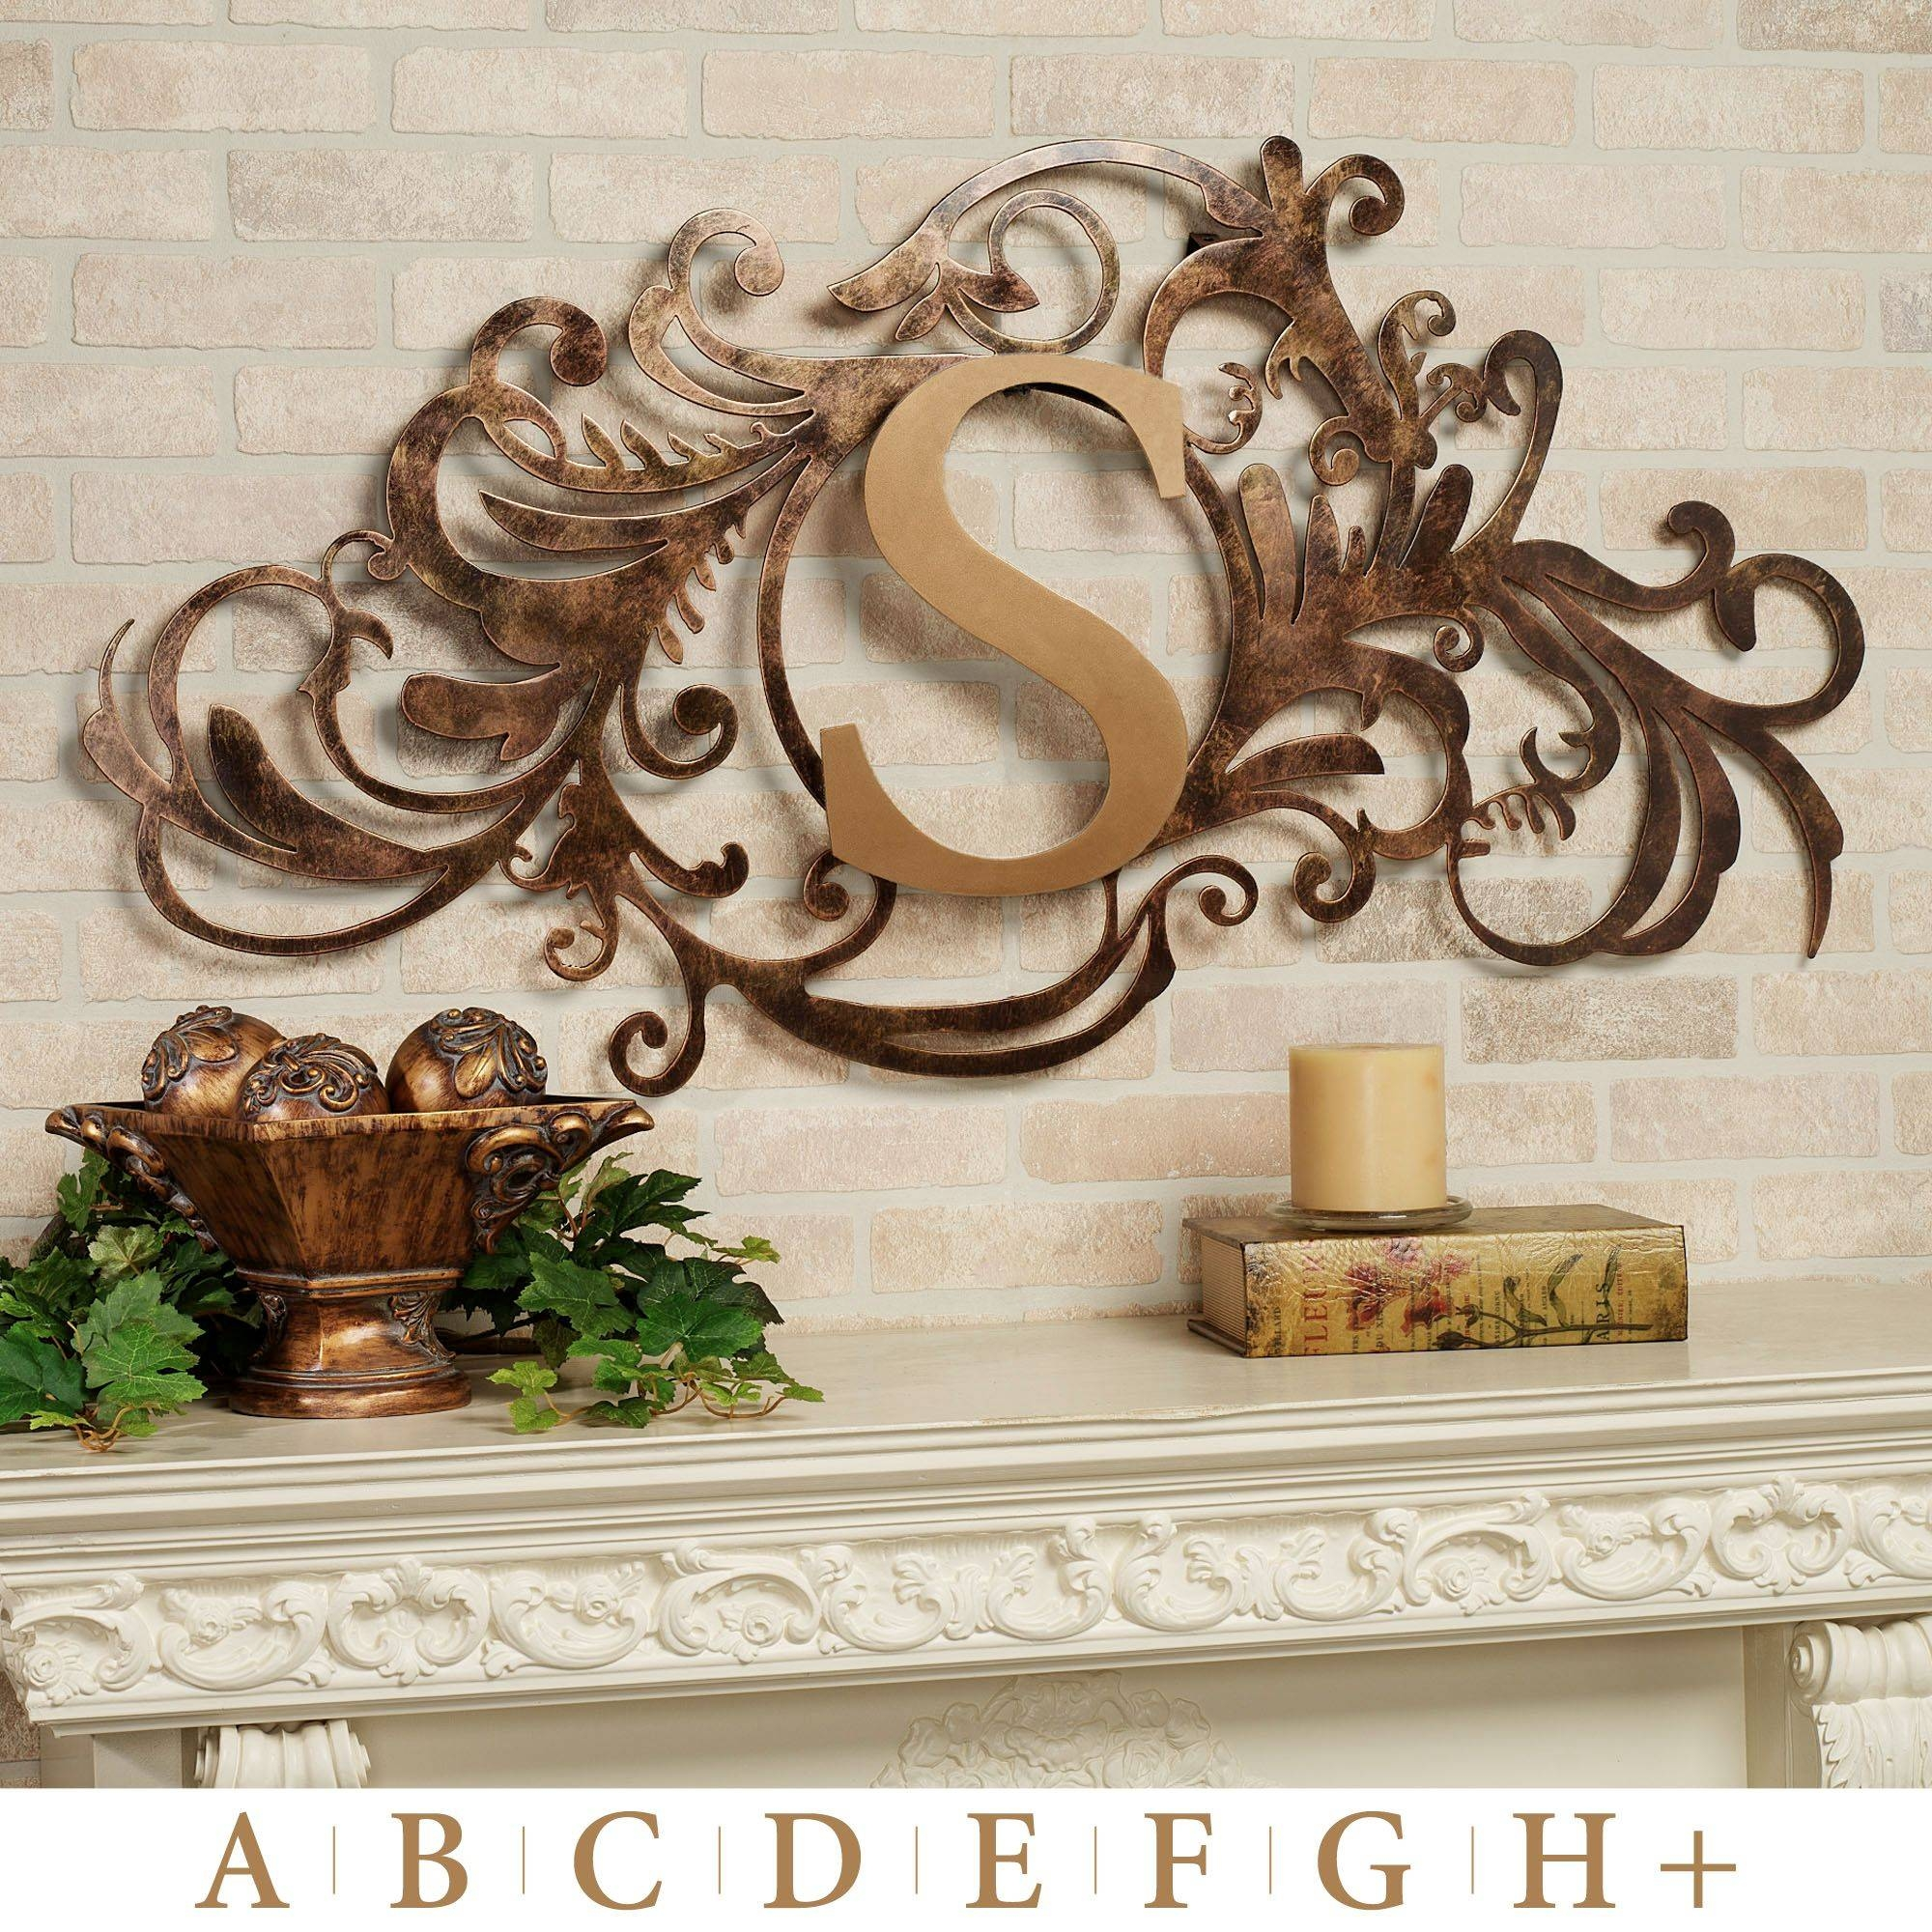 Wall Decor: Black Wrought Iron Wall Decor Ideas For Home Regarding Newest Wrought Iron Garden Wall Art (View 19 of 25)